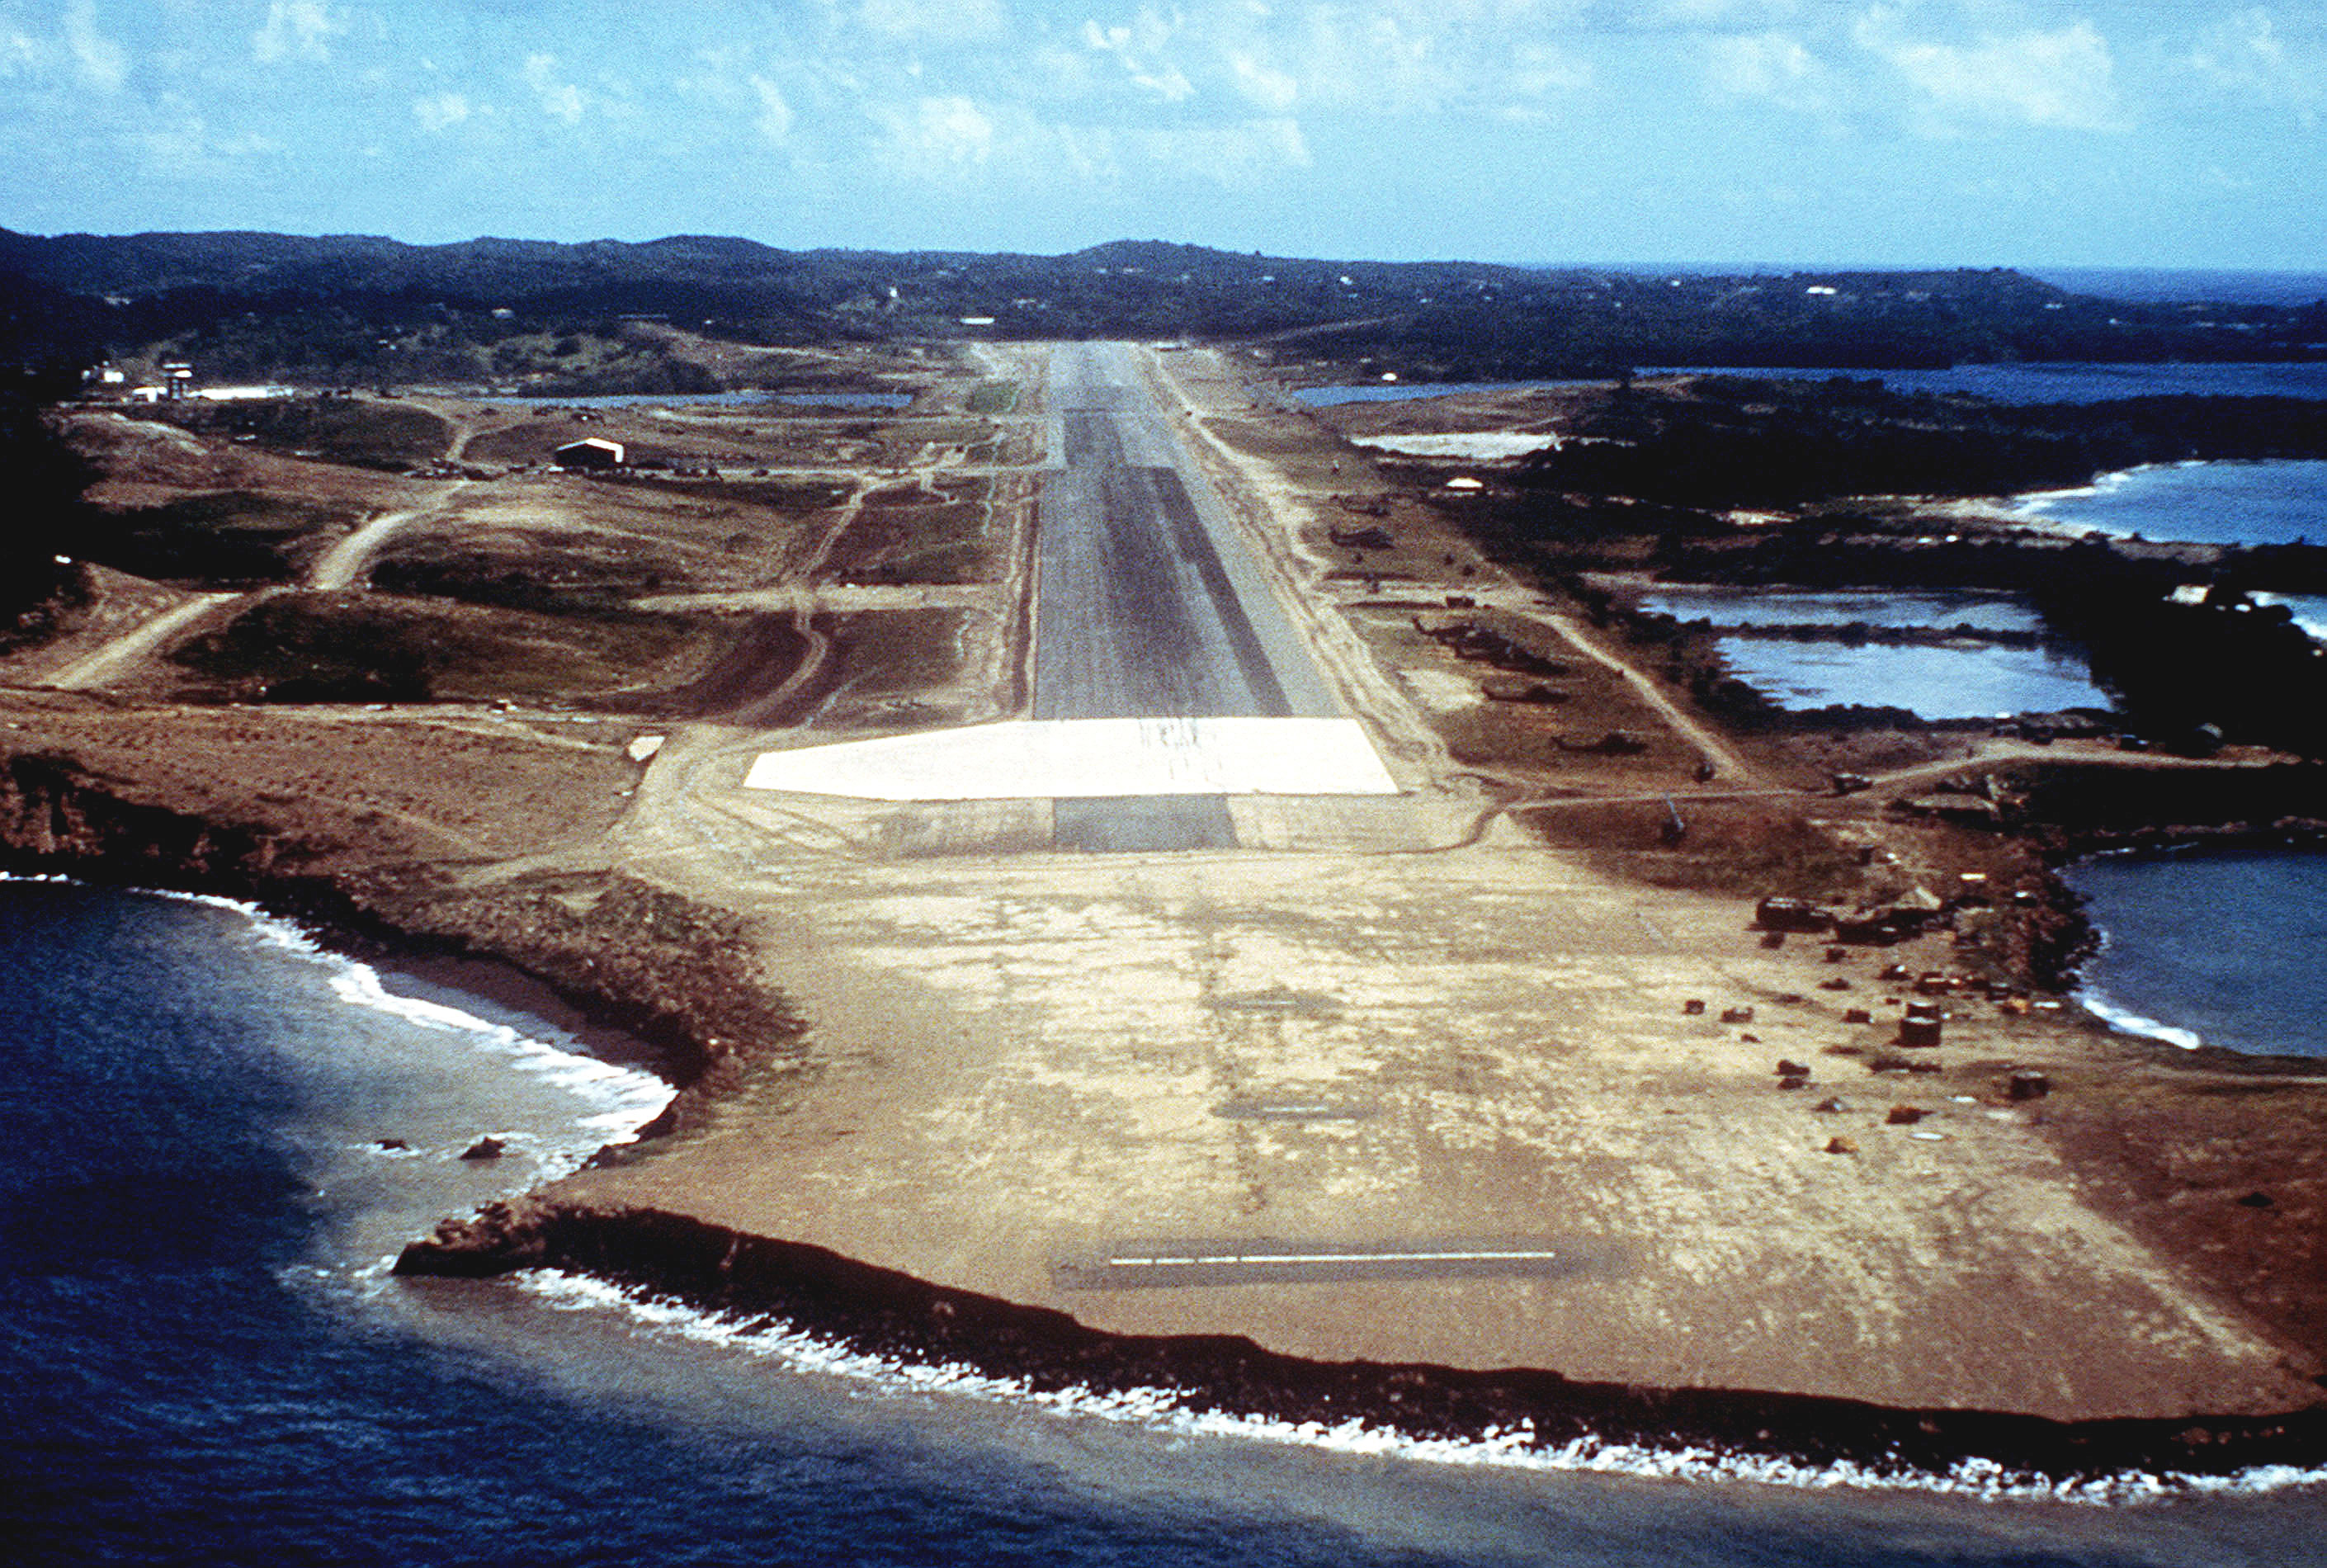 An aerial view of the approach to Point Salines Airport, taken during Operation URGENT FURY